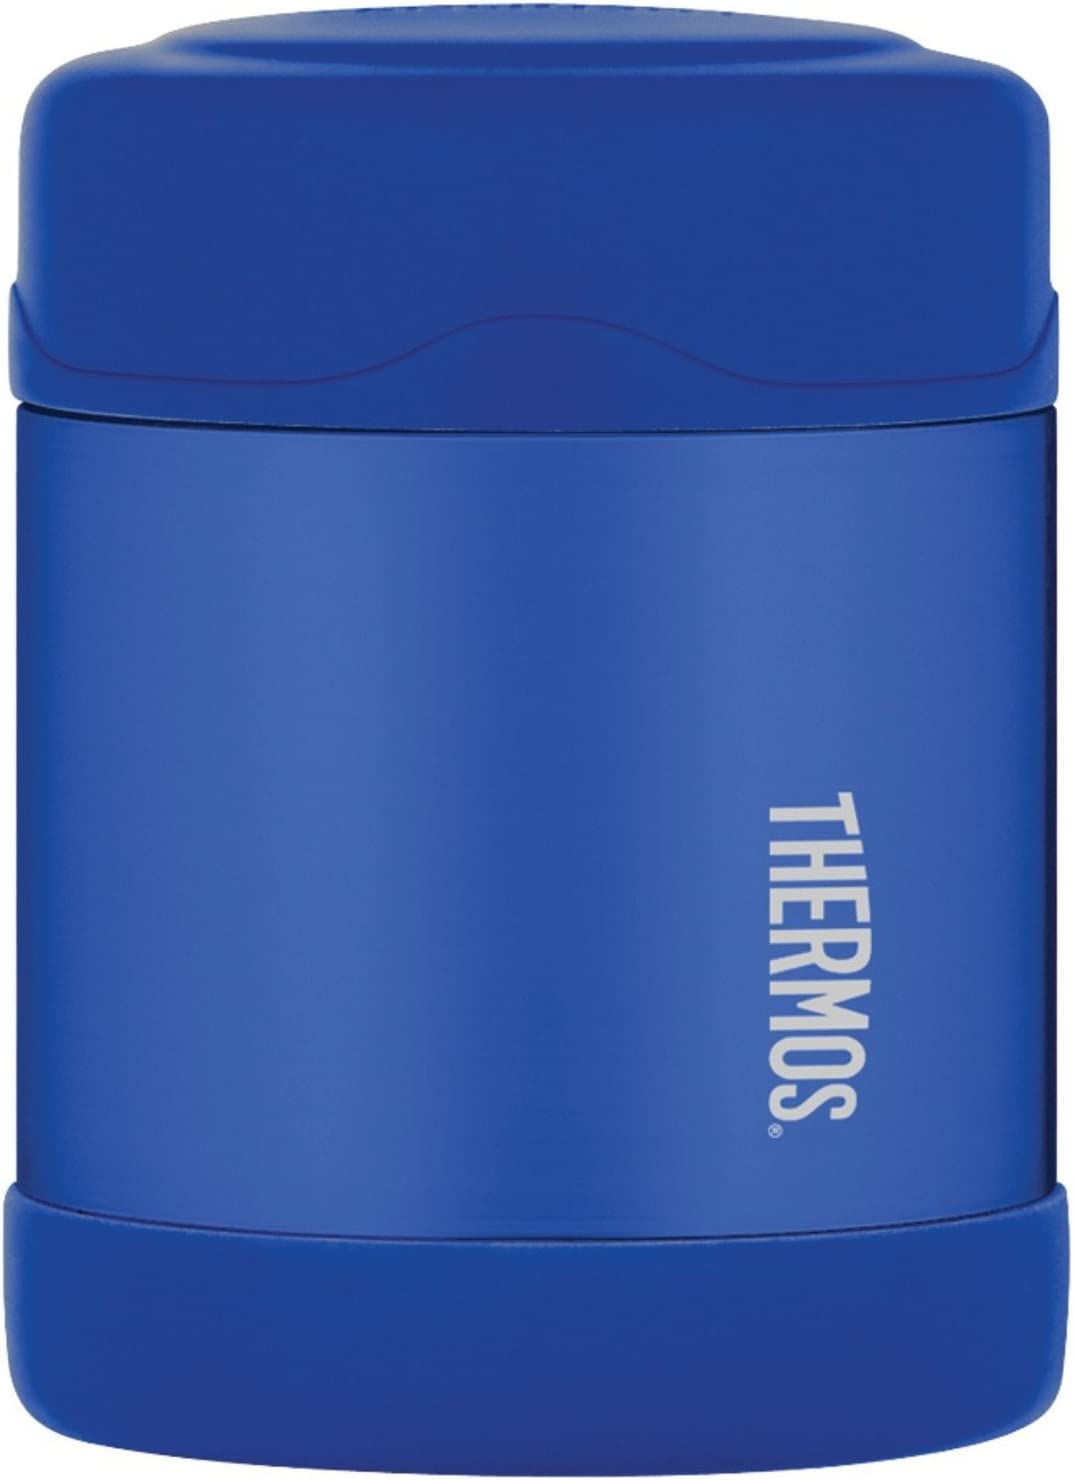 Thermos Funtainer Blue Stainless Steel Vacuum Insulated 10 Ounce Food Jar, Set of 2